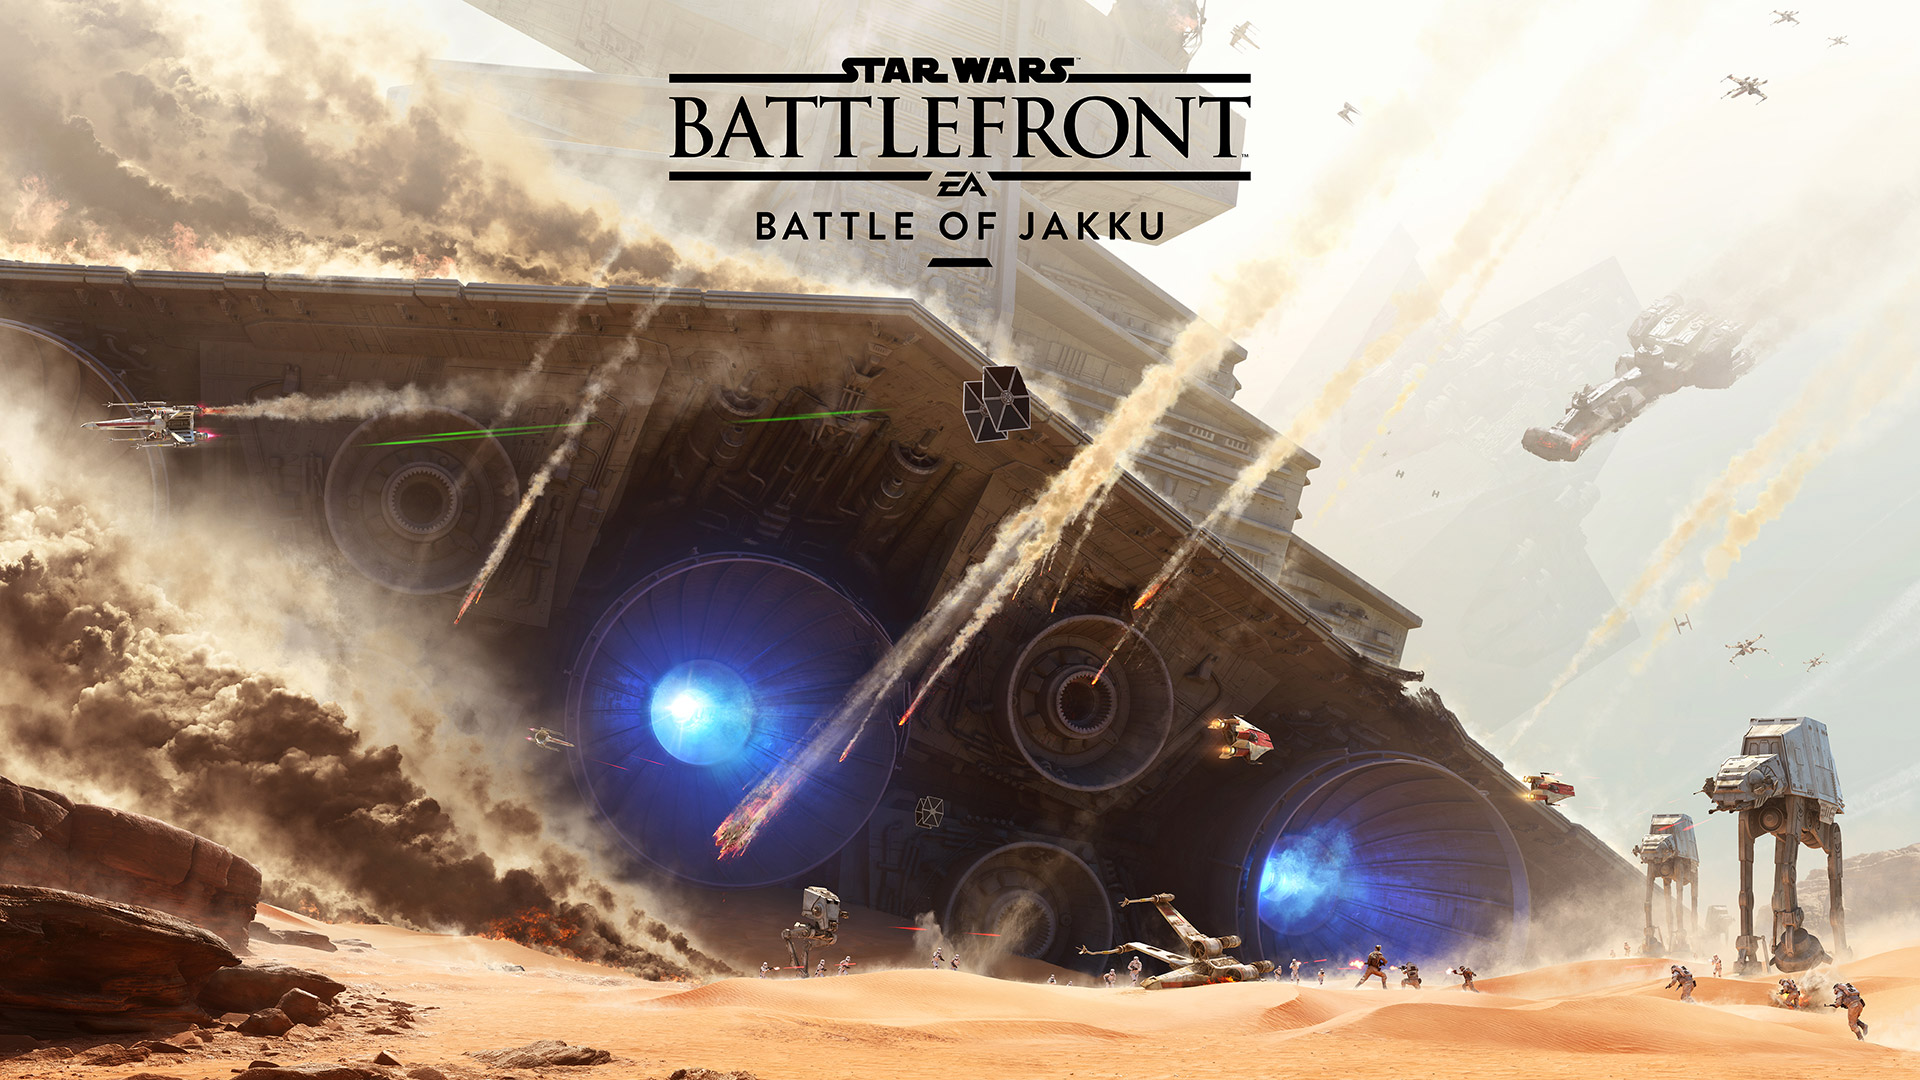 Star Wars Battlefront - New map and Game Mode on December 1st